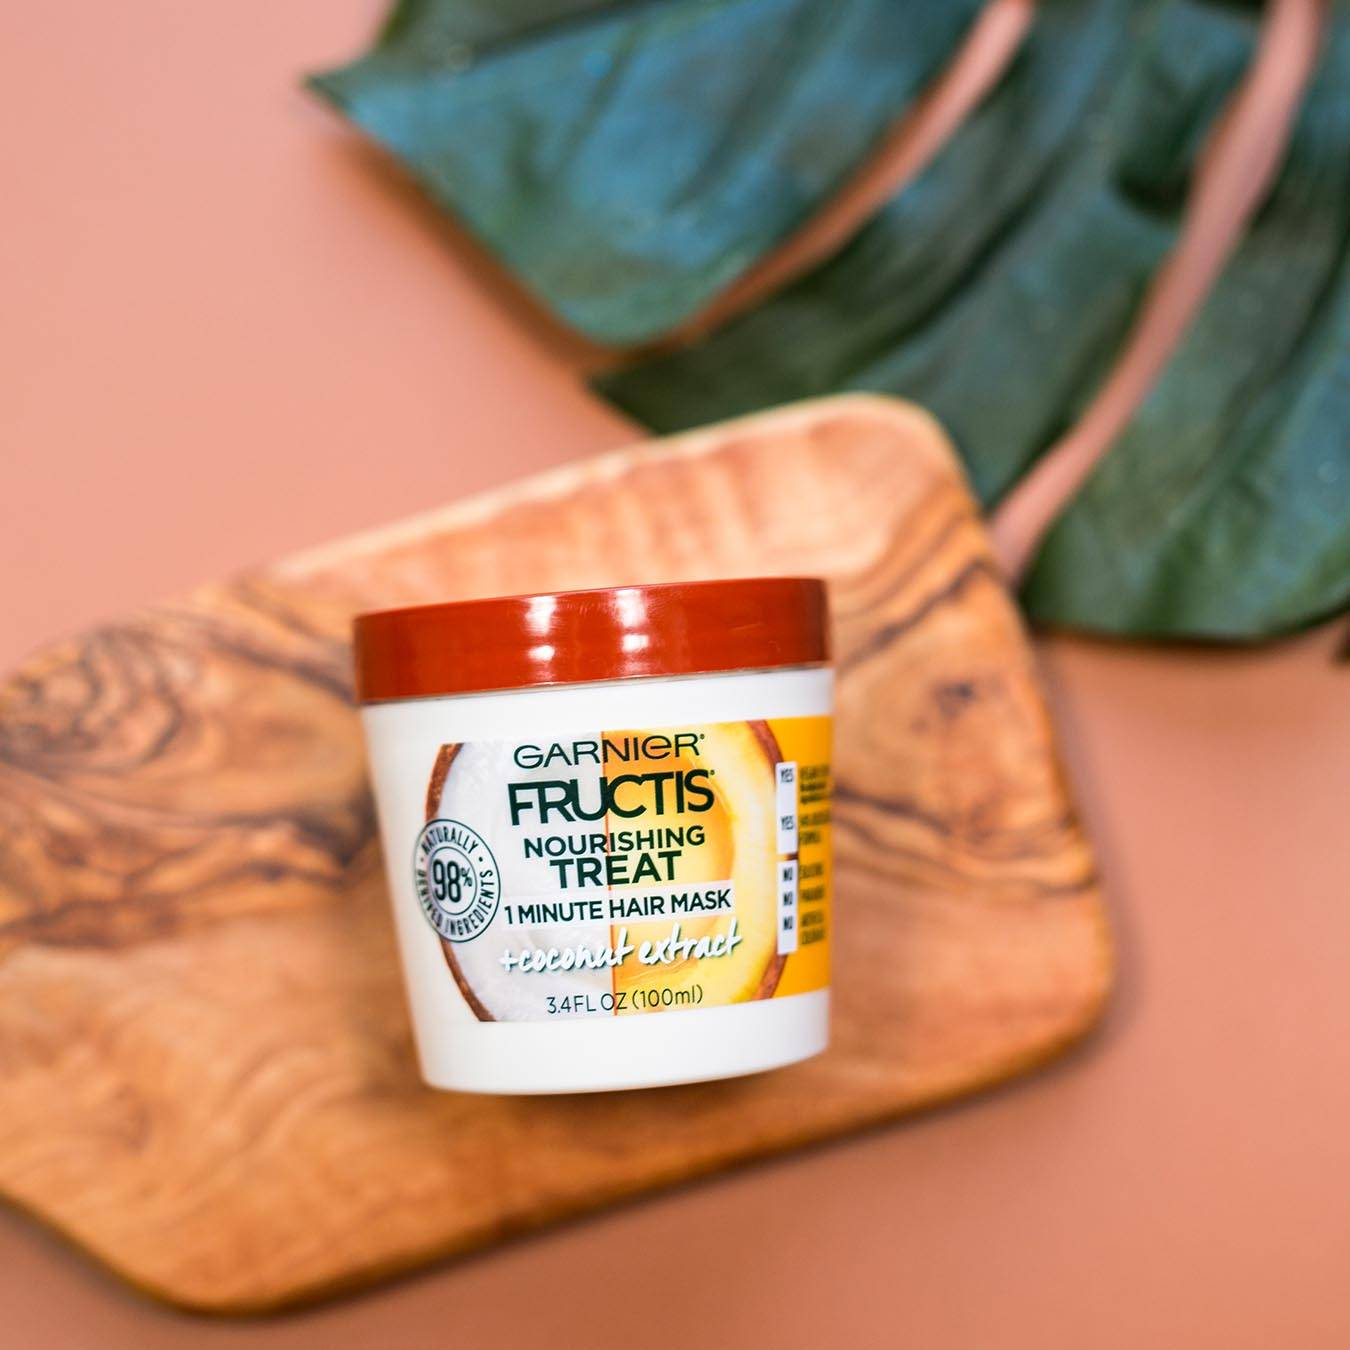 Garnier Fructis Nourishing Treat 1 Minute Hair Mask with Coconut Extract on a wooden cutting board beside a palm frond on a muted red background.